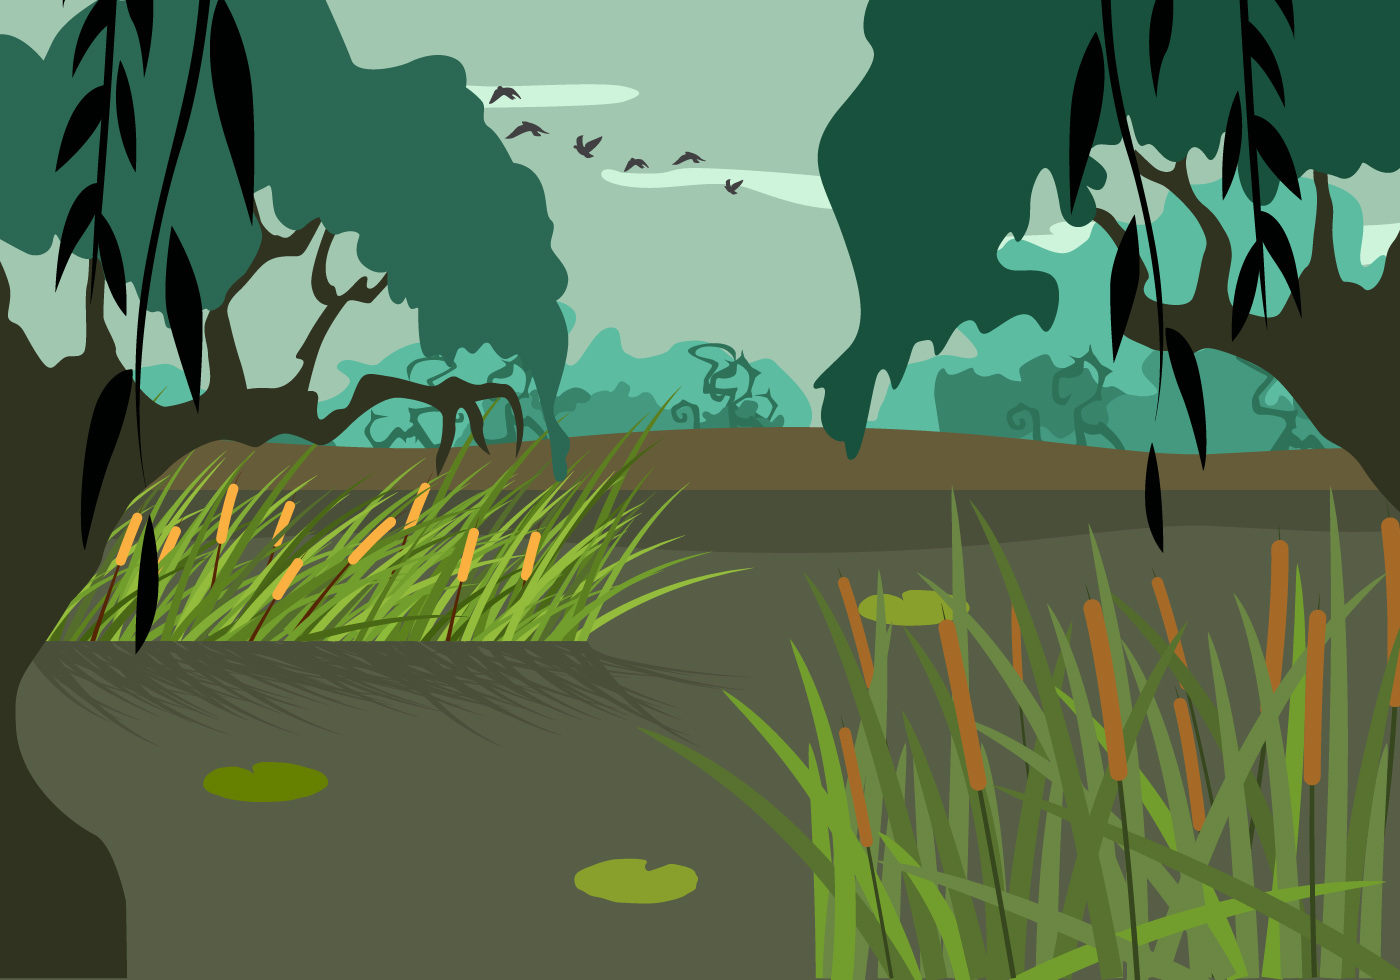 swamp illustration vector download free vector art  stock graphics   images cattails clipart free Clip Art Black and White Cattails